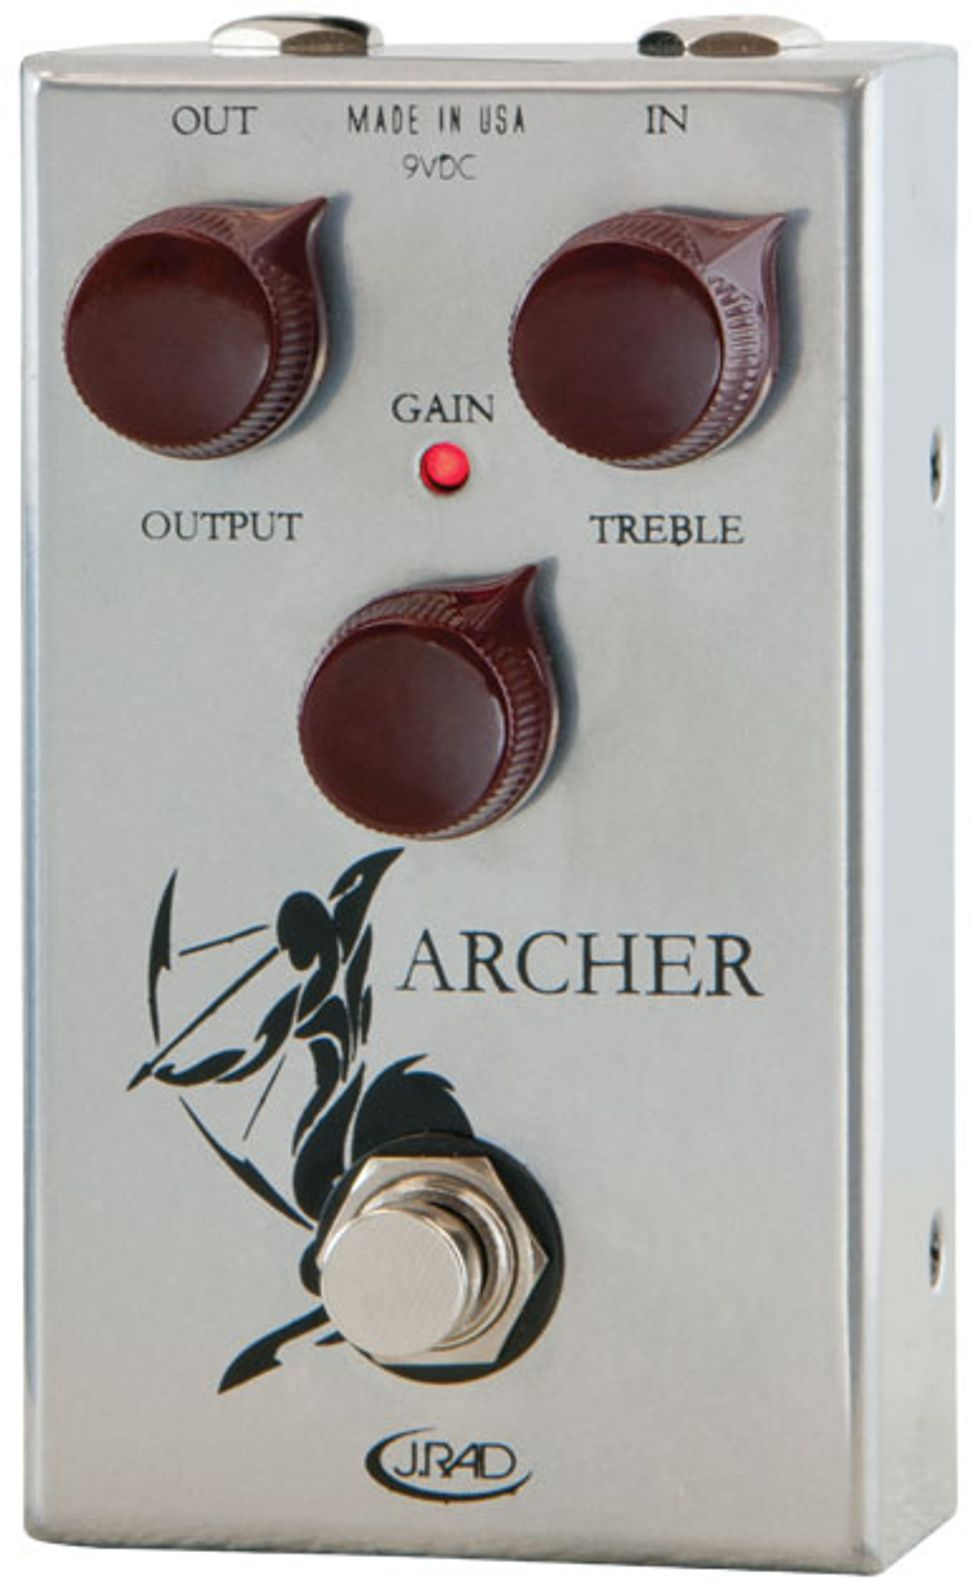 Joyo Jf Ultimate Drive Extreme Overload Effect Pedal For Guitars Of High Power Overdrive Booster furthermore Cs Markers Overloaddots together with Anthem Live Melt Down likewise Cs Headshape Rea besides Zicbckd P K M Ri Sus. on overload guitars